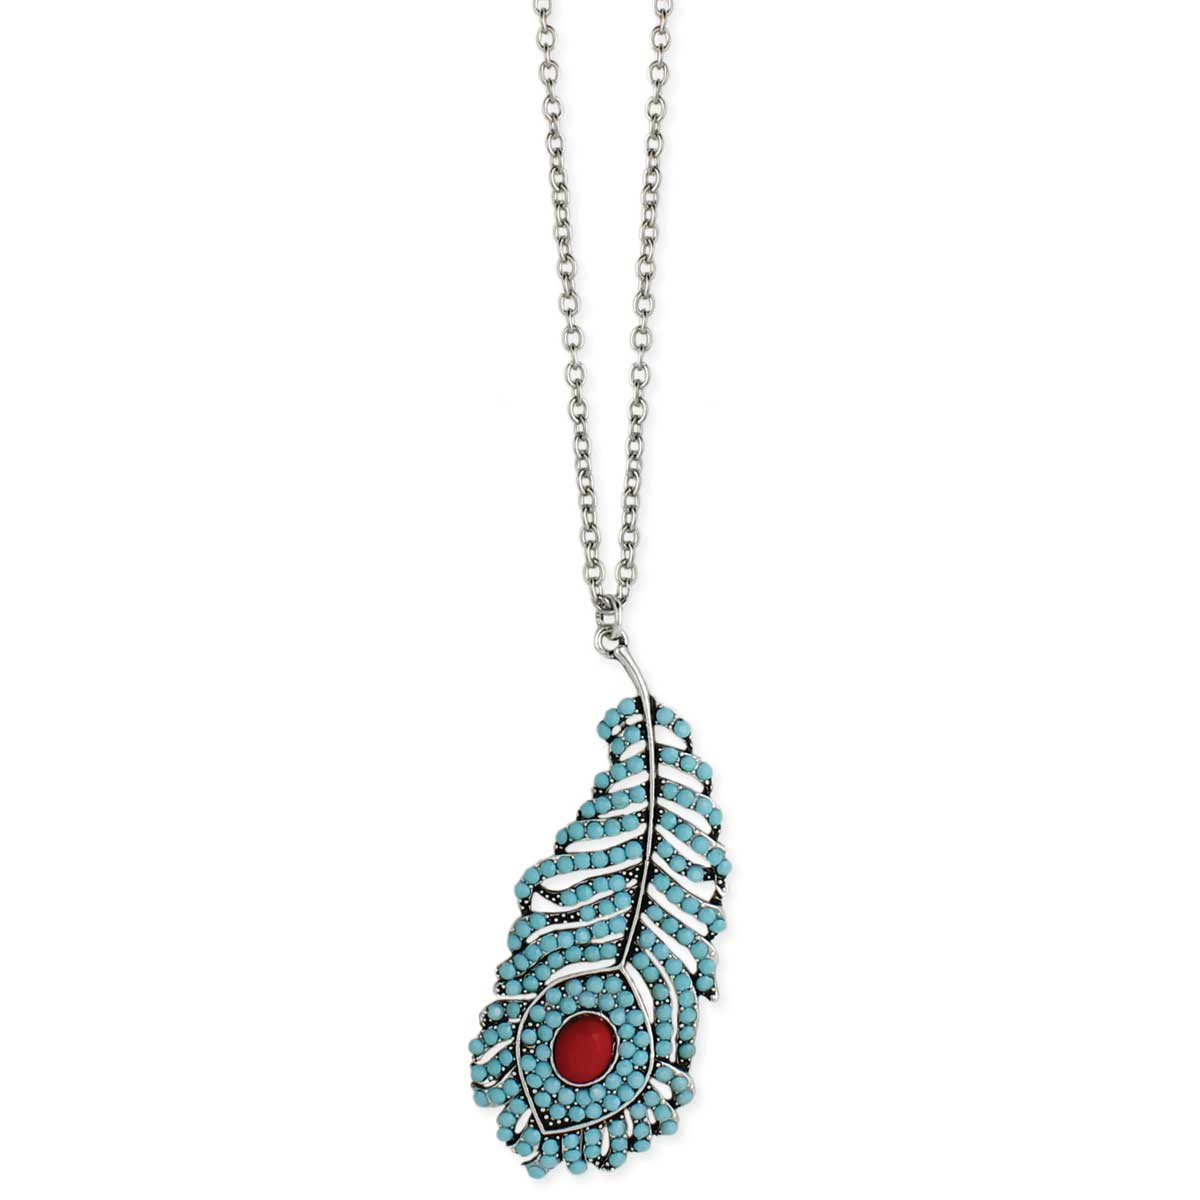 Turquoise Crystal Feather Long Necklace